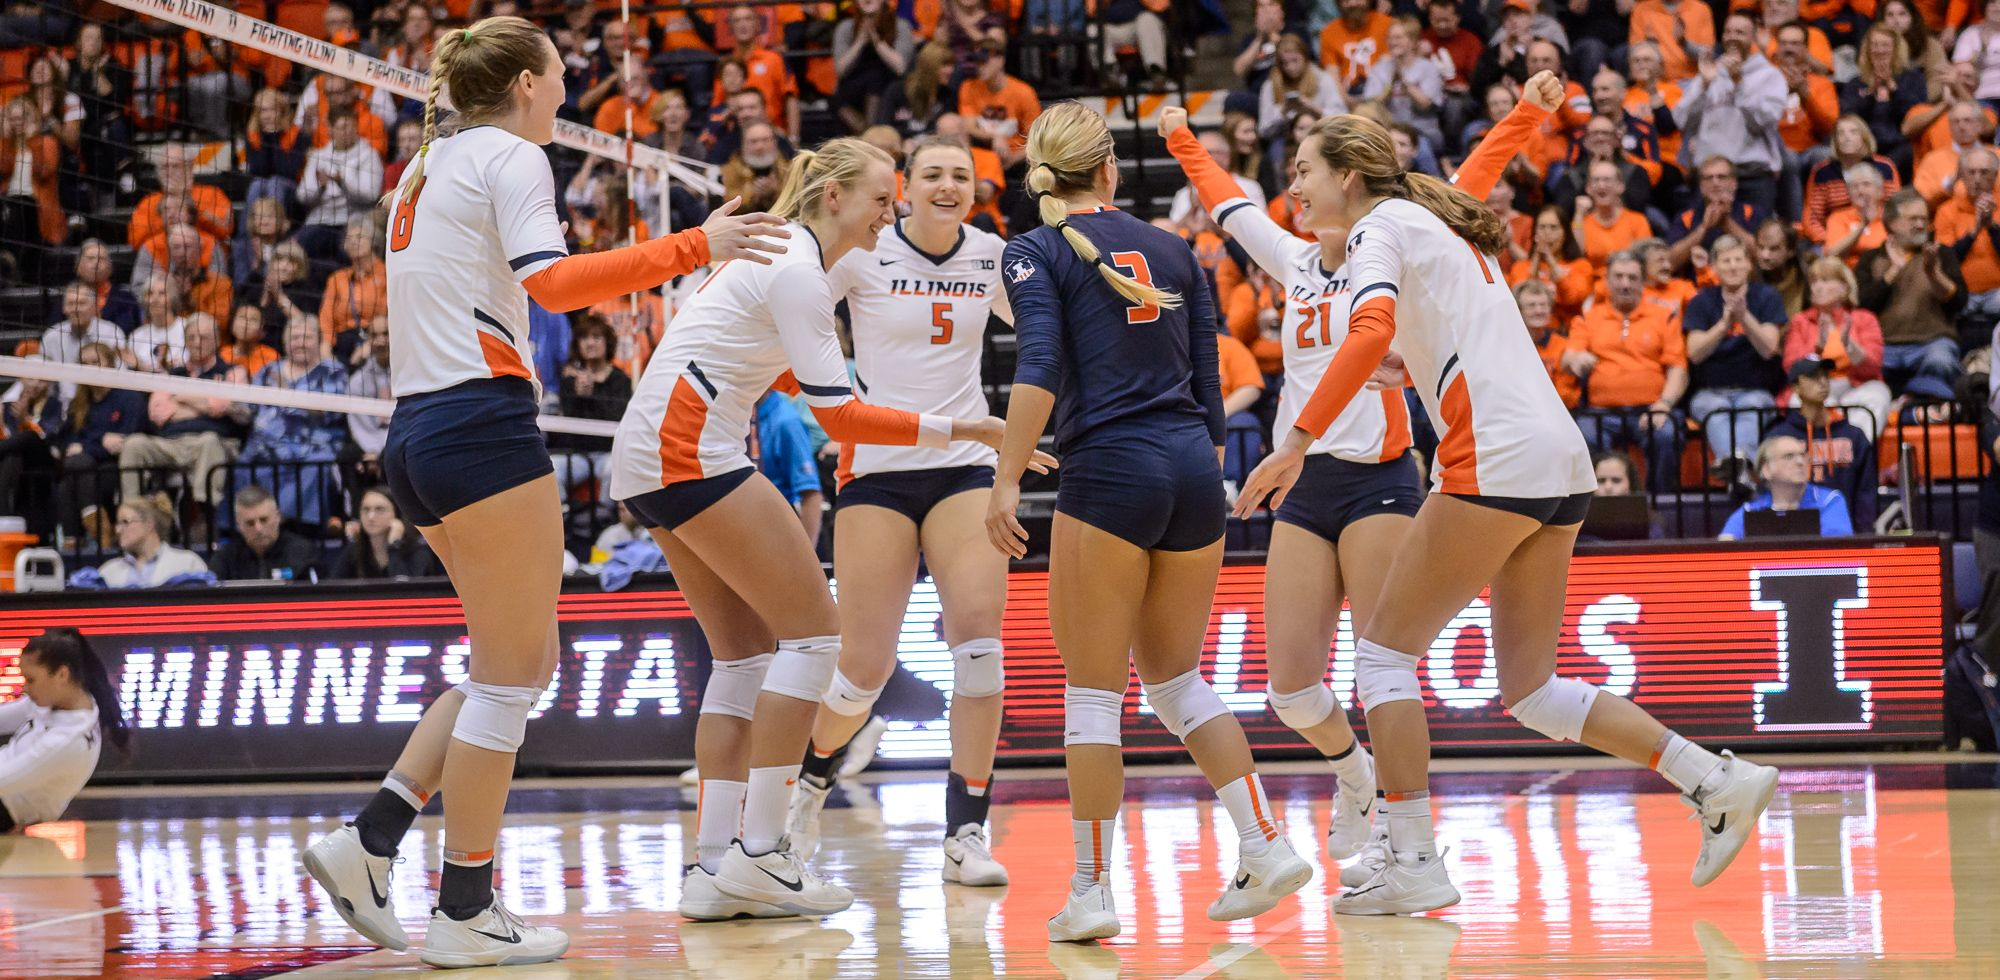 2018 Schedule Set For Illini Volleyball University Of Illinois Athletics University Of Illinois Athletics Volleyball Volleyball News